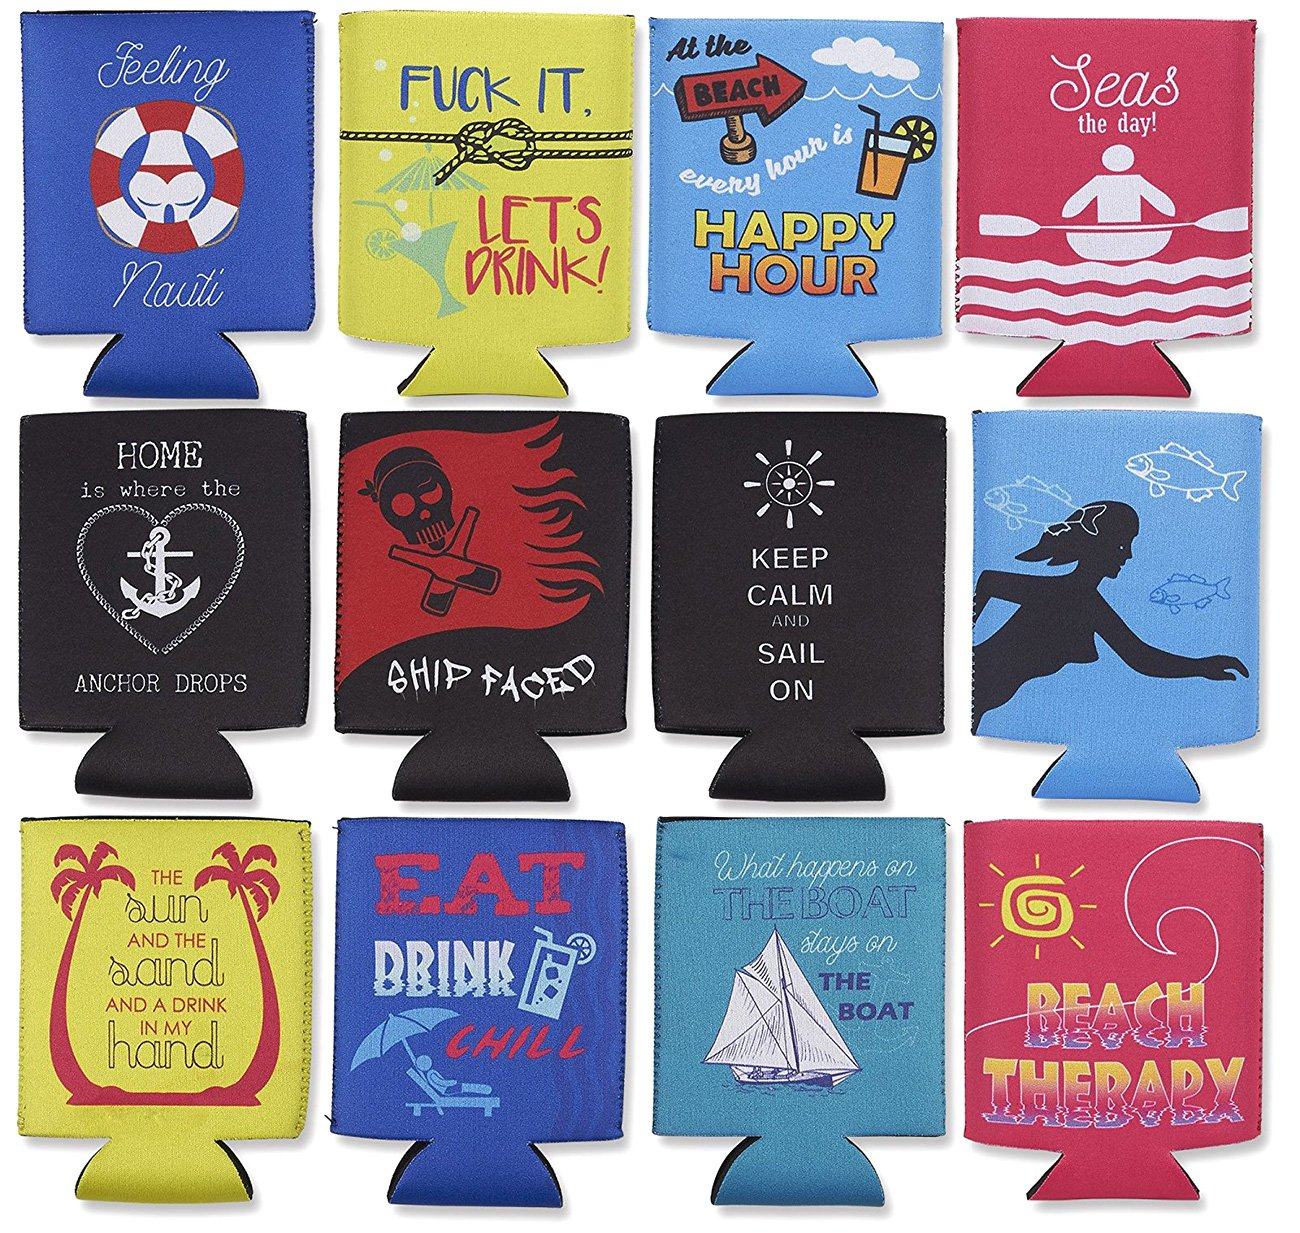 Nautical Beer Sleeve – 12-Pack Can Covers Drink Holder with Insulated Covers, 12-Ounce Neoprene Coolers for Soda, Beer, Can Beverage, Multicolor, 2.4 x 2.4 x 4 Inches